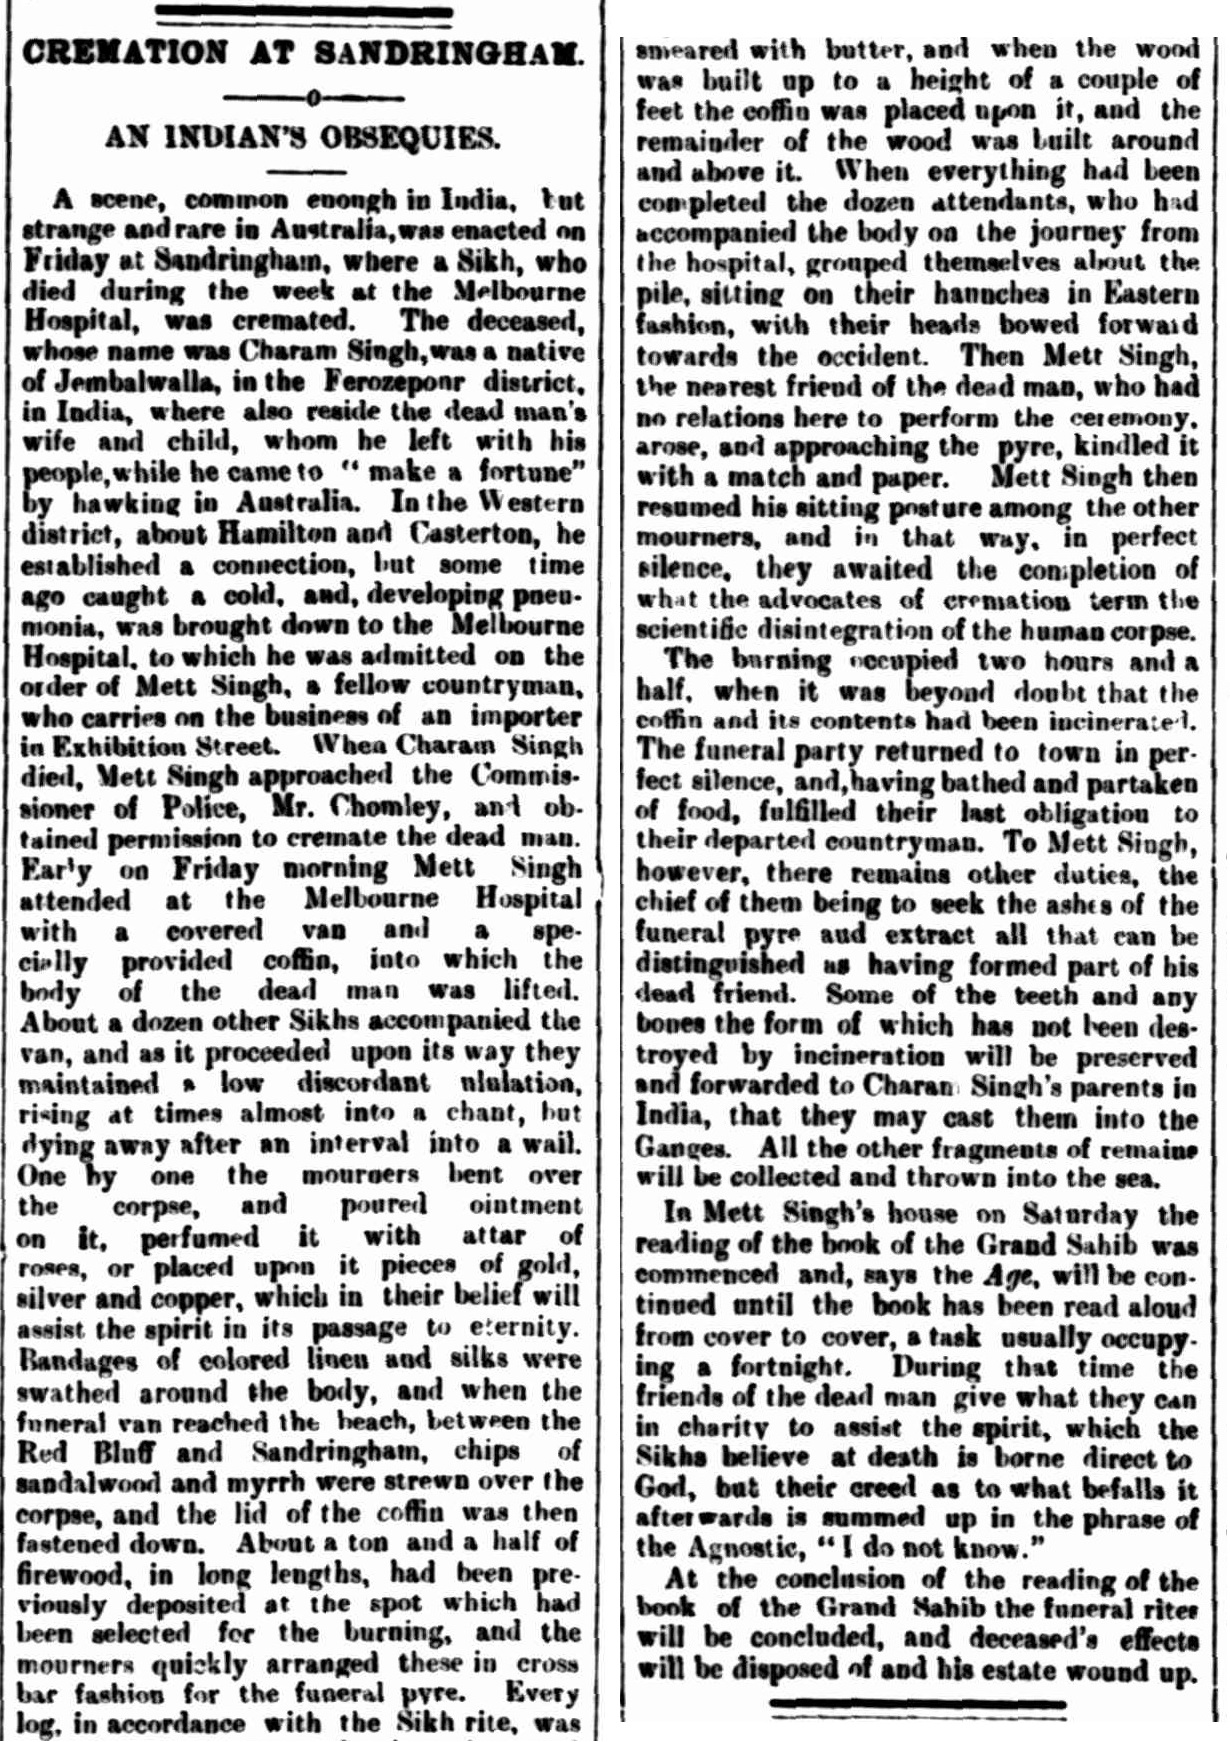 An article taken from 'The Horsham Times' in Victoria on Tuesday 19 March 1895